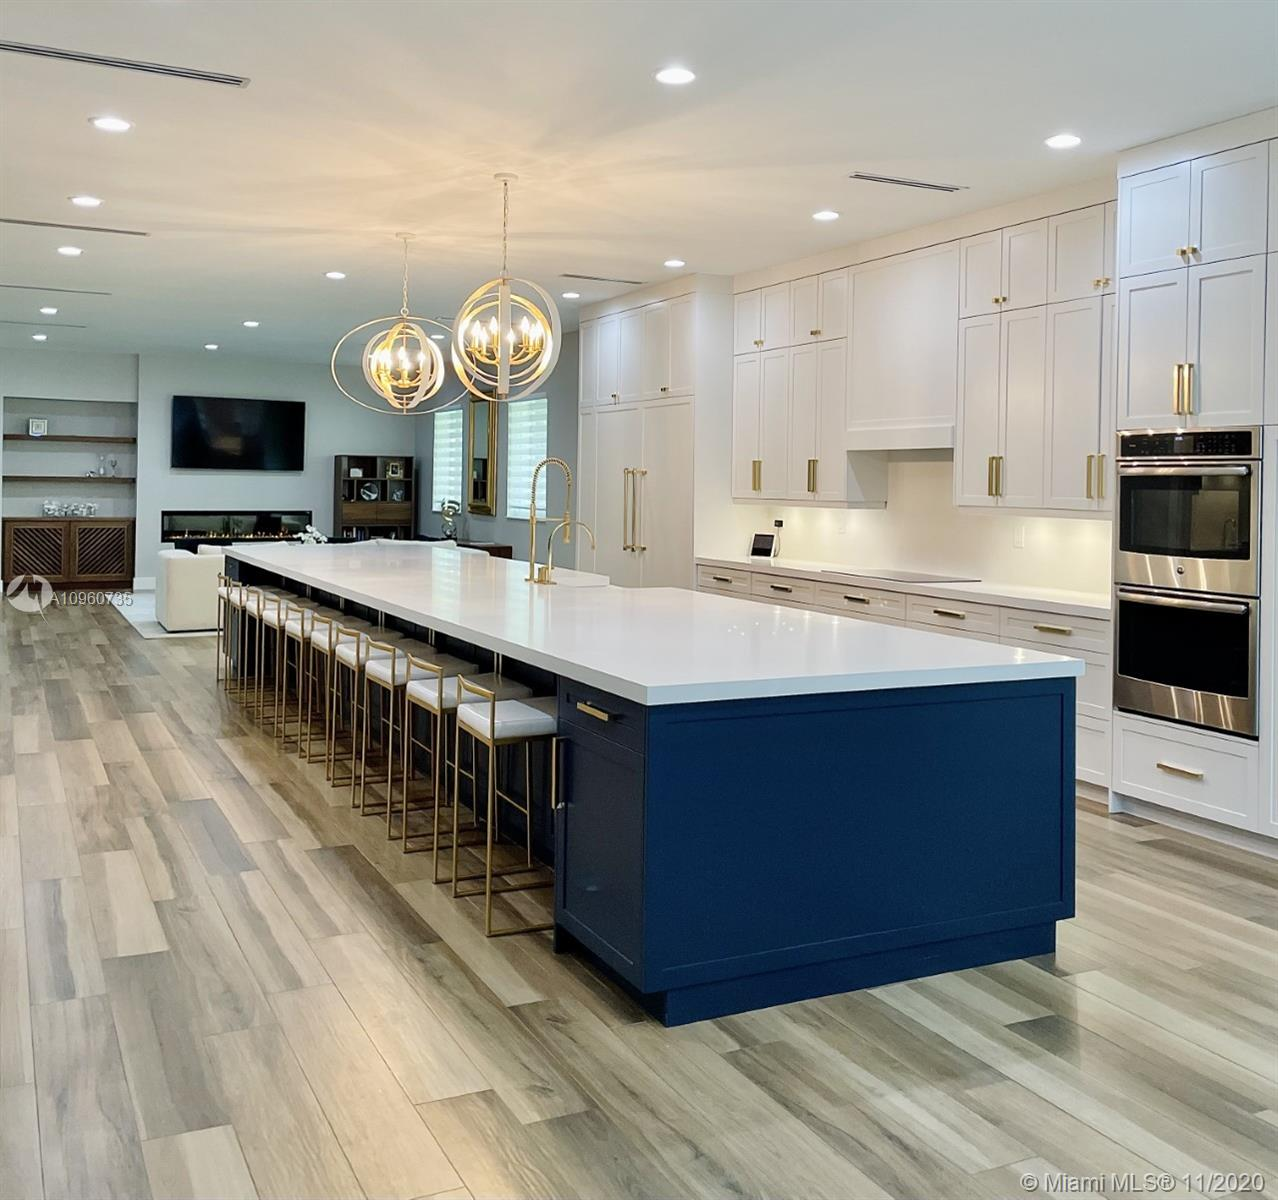 Sophisticated and stylish, custom home built in 2019 on one of the most desirable lots in South Miami. This home is perfect for large or extended families and for entertaining family and friends.  No expense was spared with this classic contemporary design featuring an open floor plan with 10 foot ceilings throughout. The custom-built kitchen features an extraordinary 25 foot island with a large walk-in pantry. Great for indoor/outdoor entertaining with an over 900 sqft covered terrace overlooking a brand new 35 x 17 heated saltwater pool. Easy access to highways, great schools, and shopping nearby, Your dream home awaits.